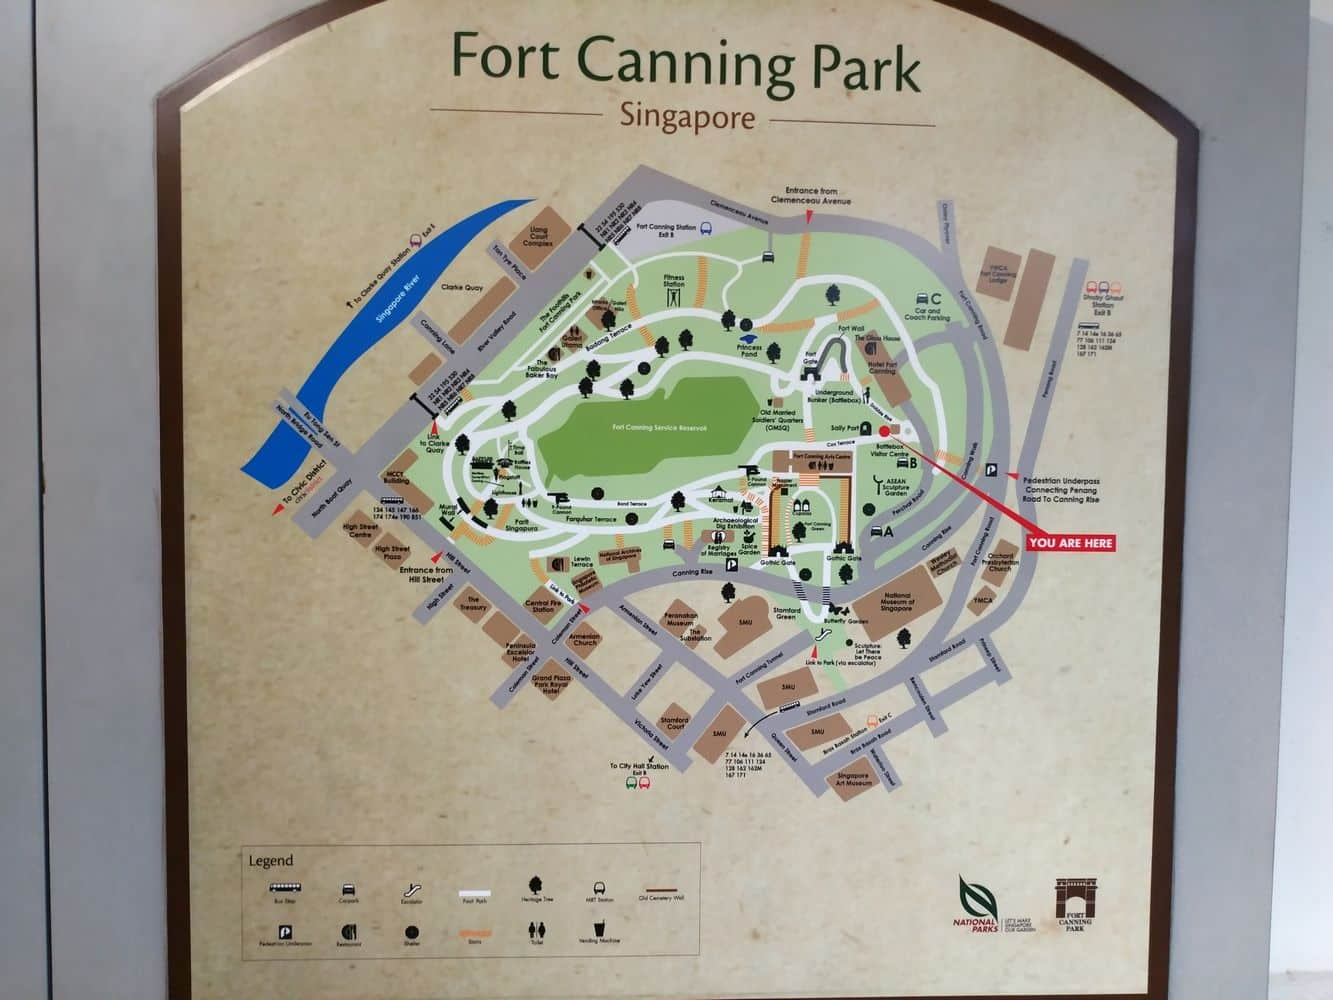 Fort Canning Park 00016